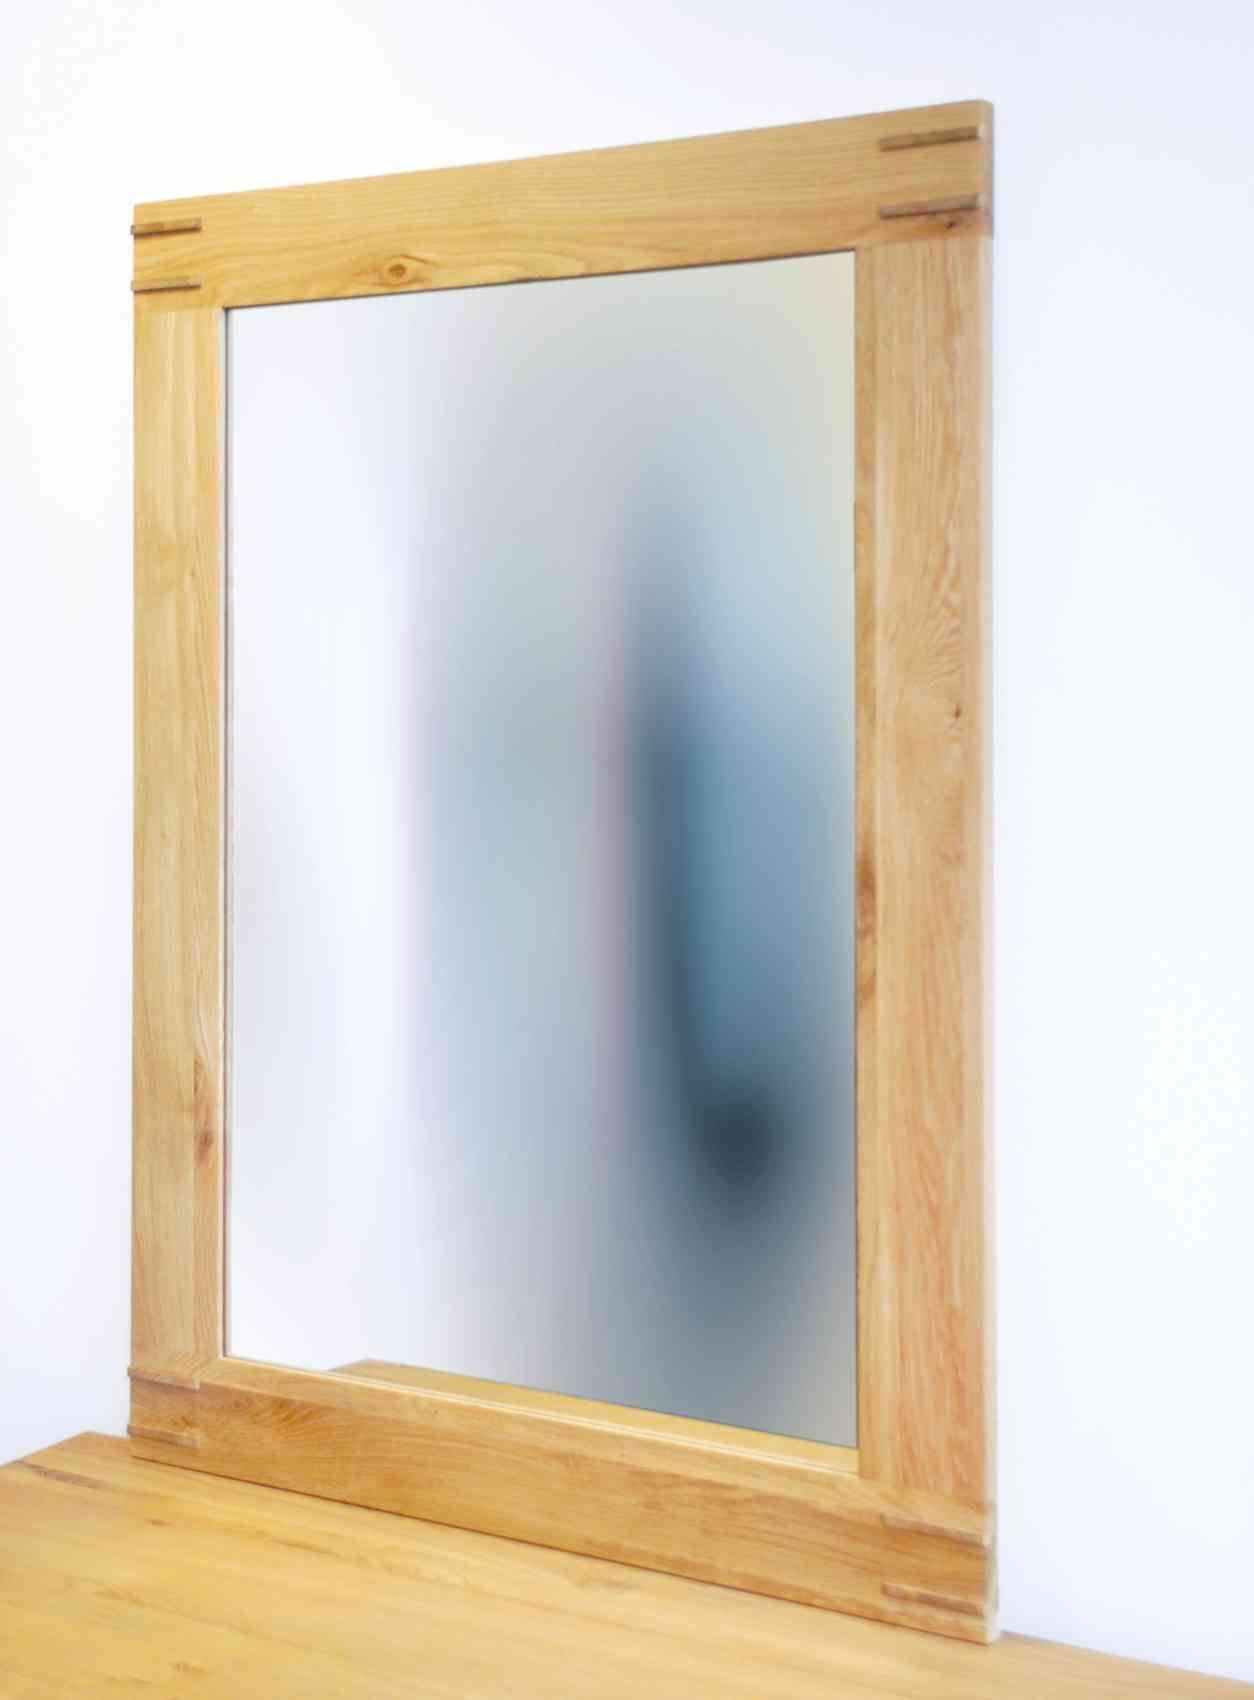 This Oak Framed Wall Mirror Adds Depth To Your Room